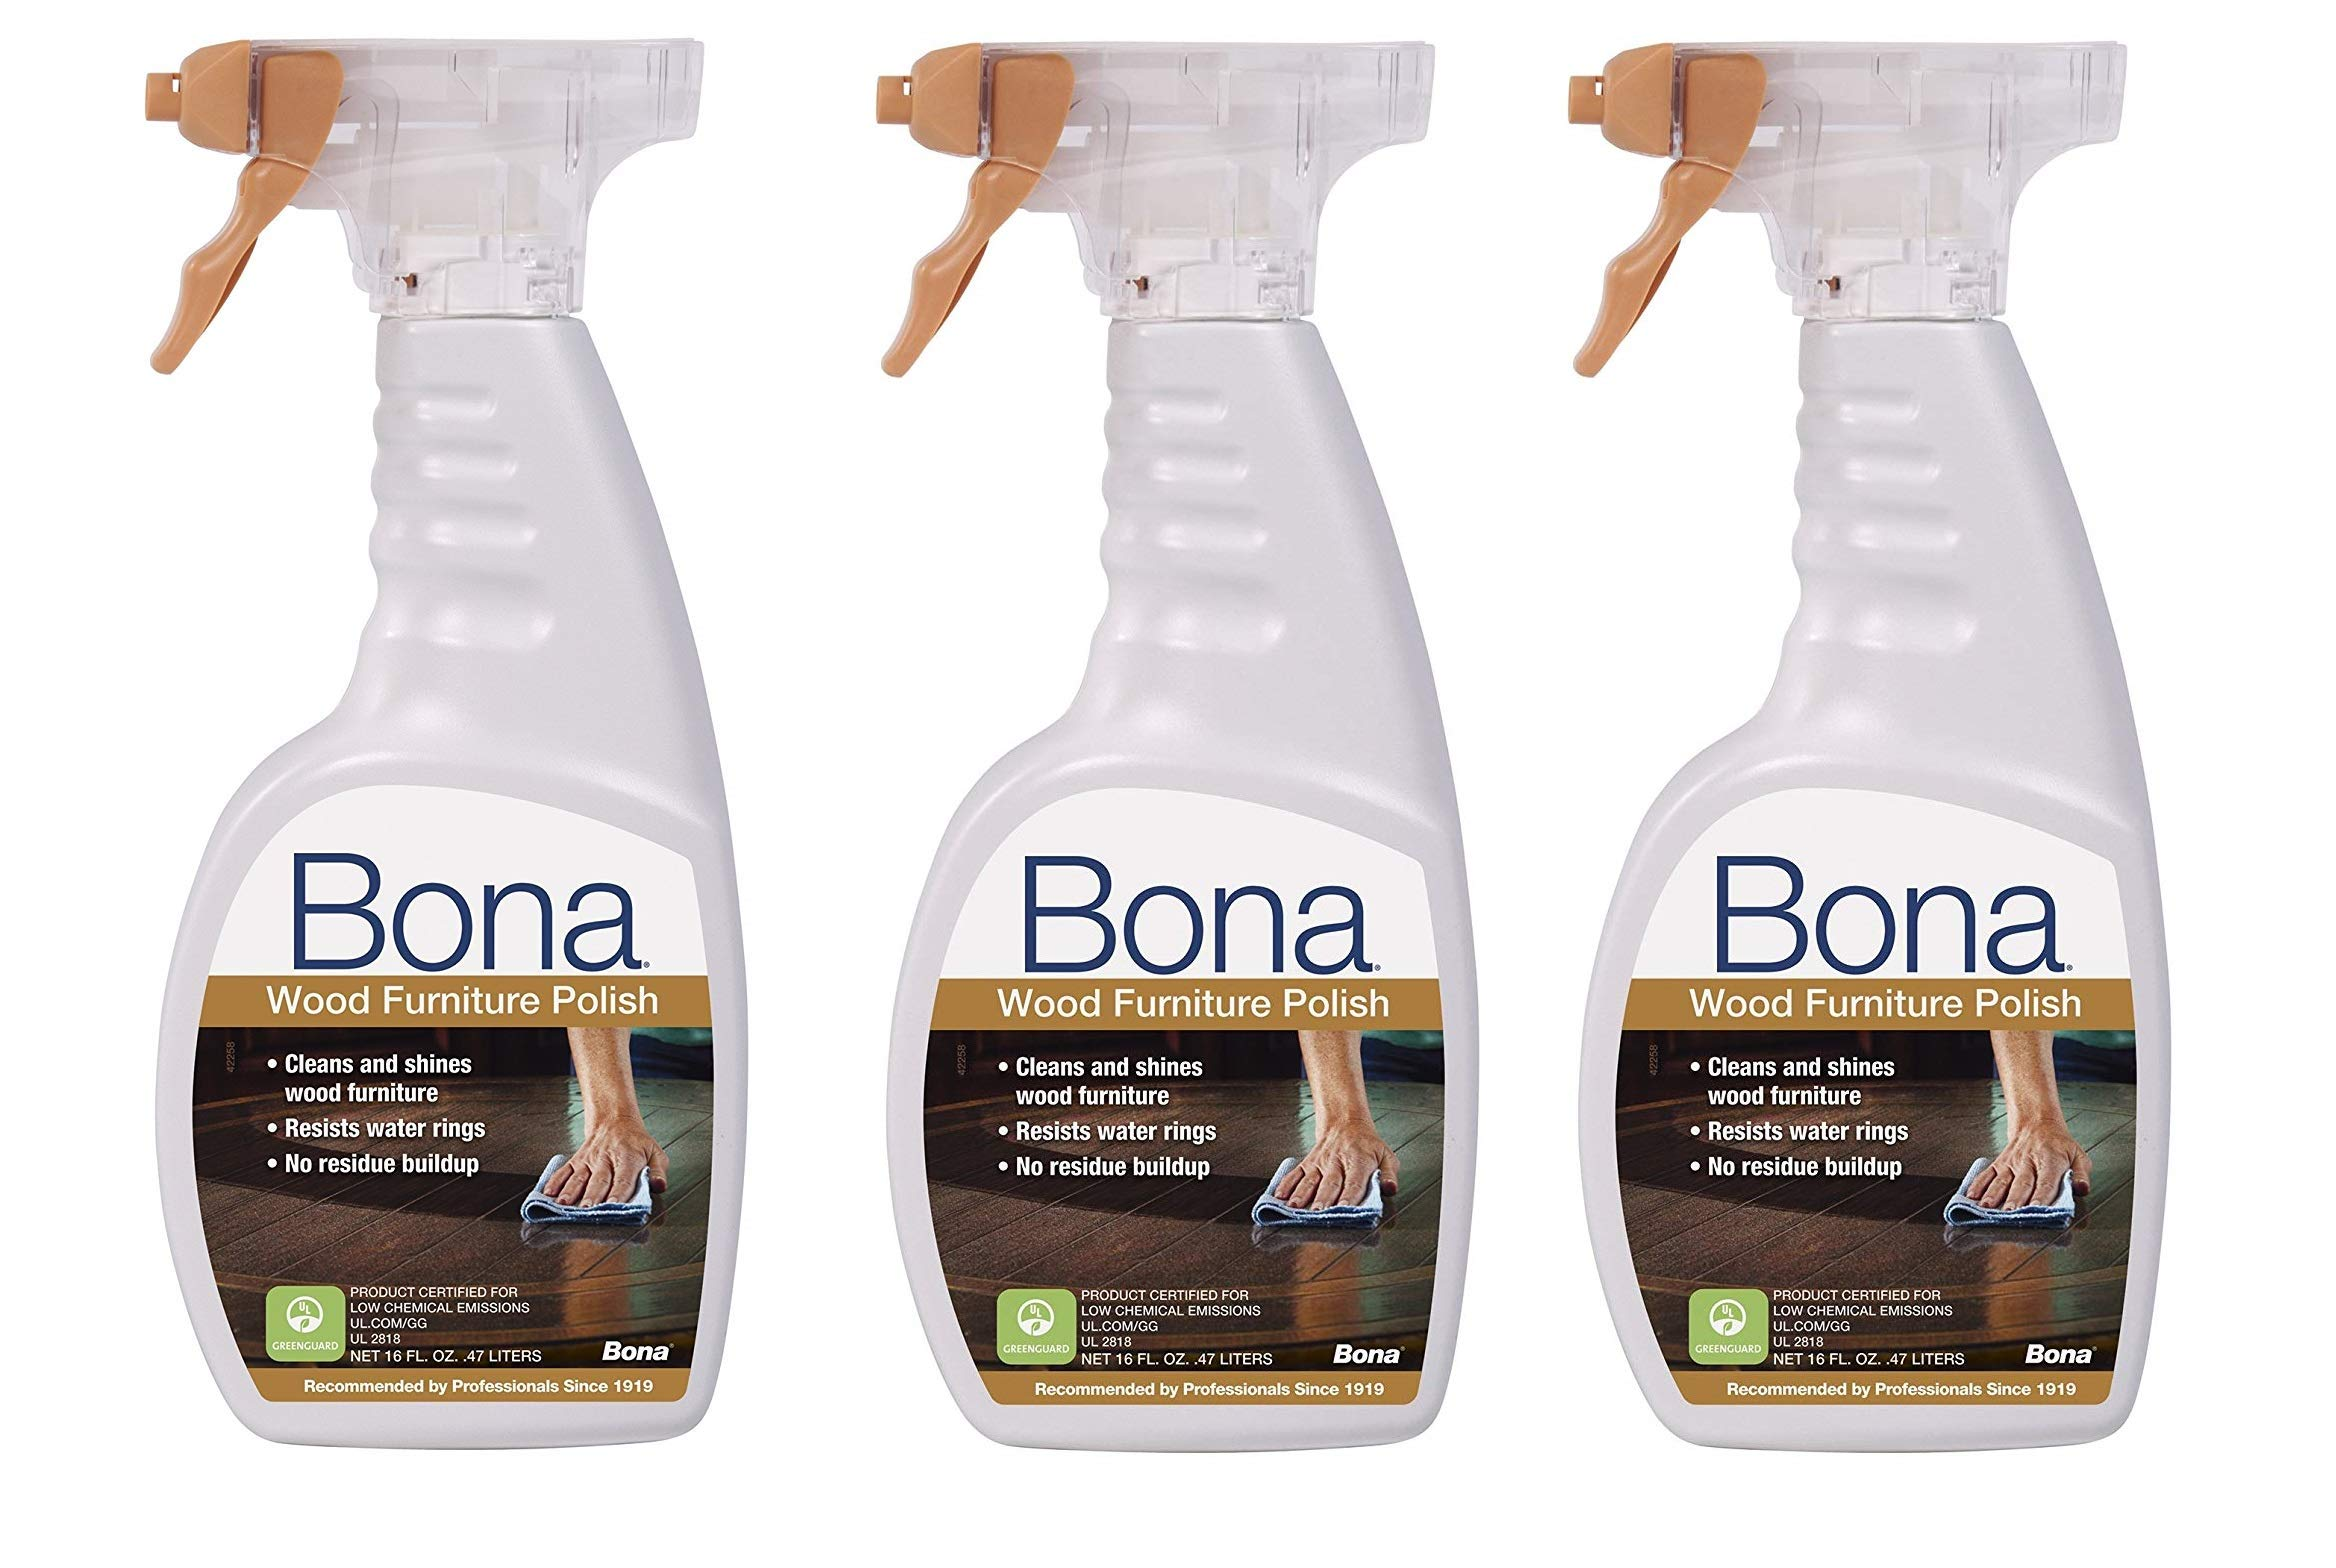 Bona 16 Ounce Wood Polish Clean & Shine Your Furniture, Sold as 3 Pack (WP650052001) by Bona